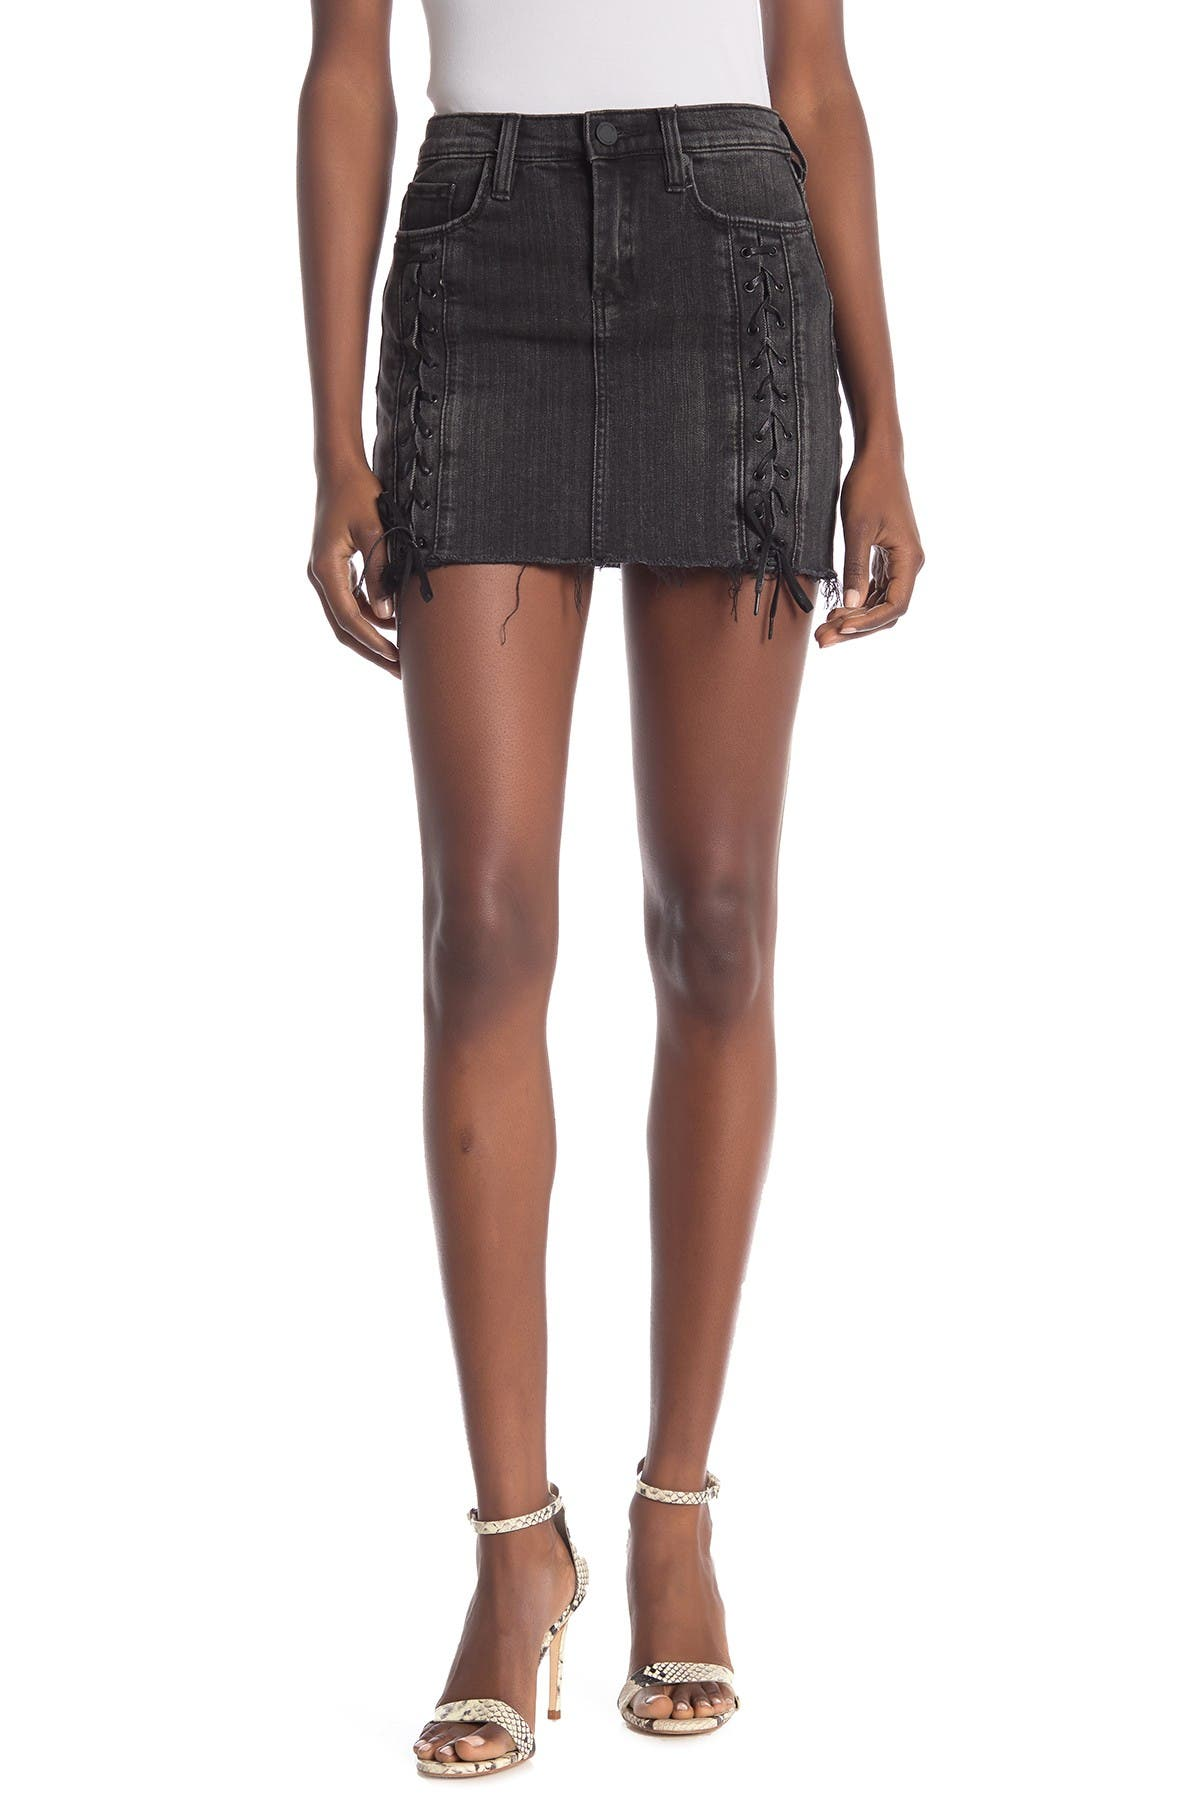 Image of BLANKNYC Denim Lace-Up Denim Mini Skirt